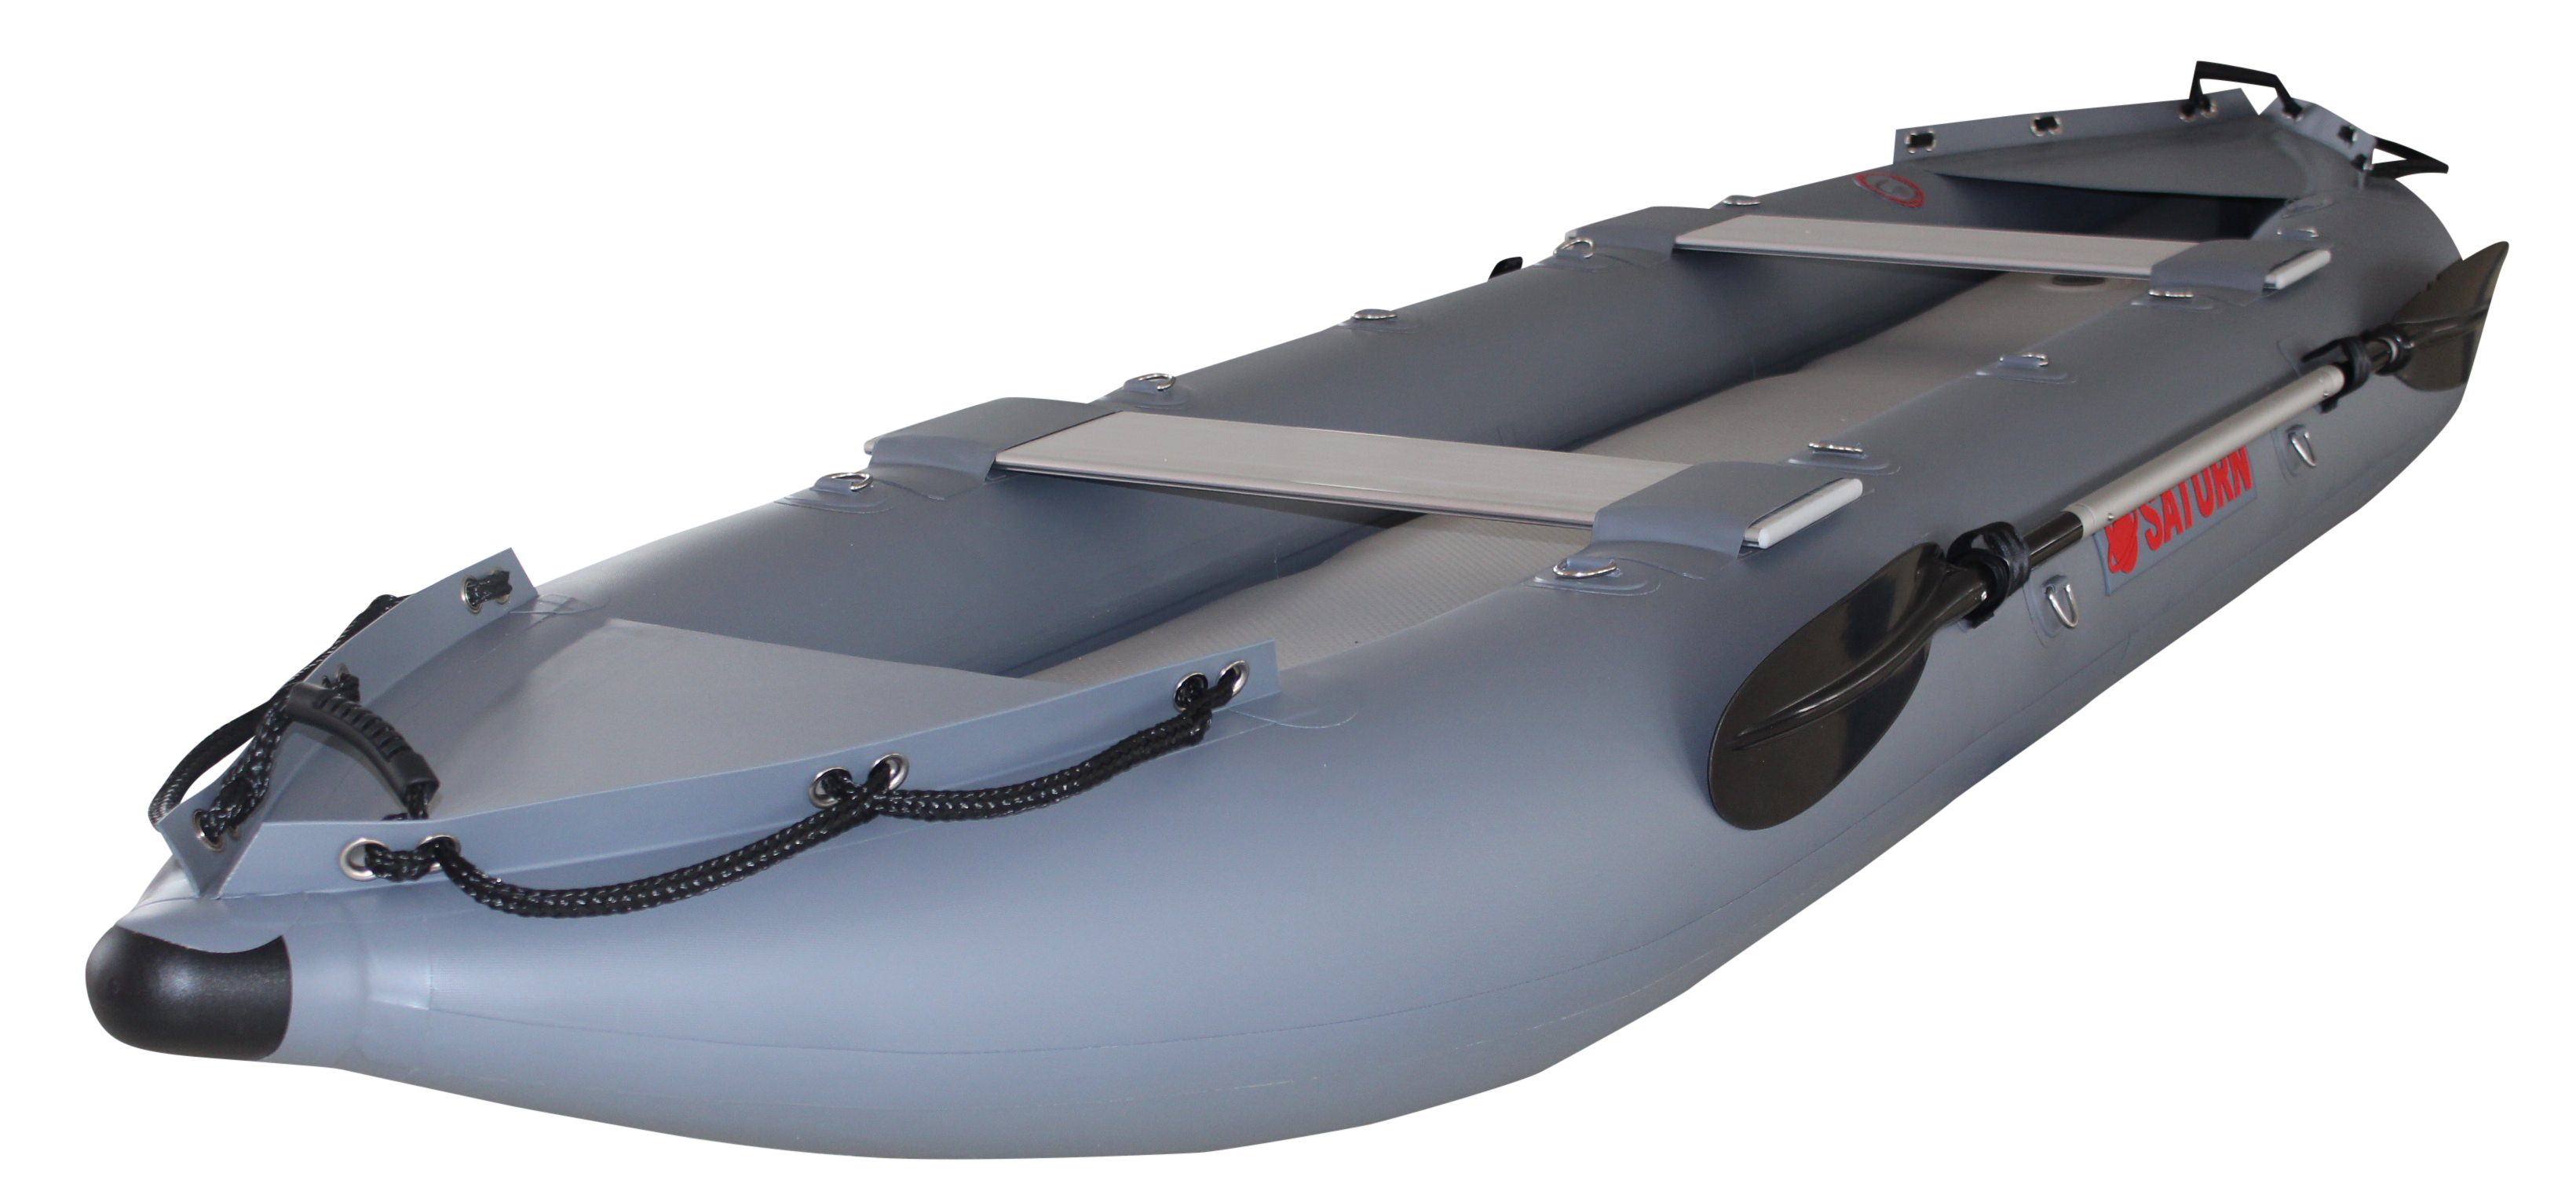 2021 13' Saturn Ocean Fishing Kayak